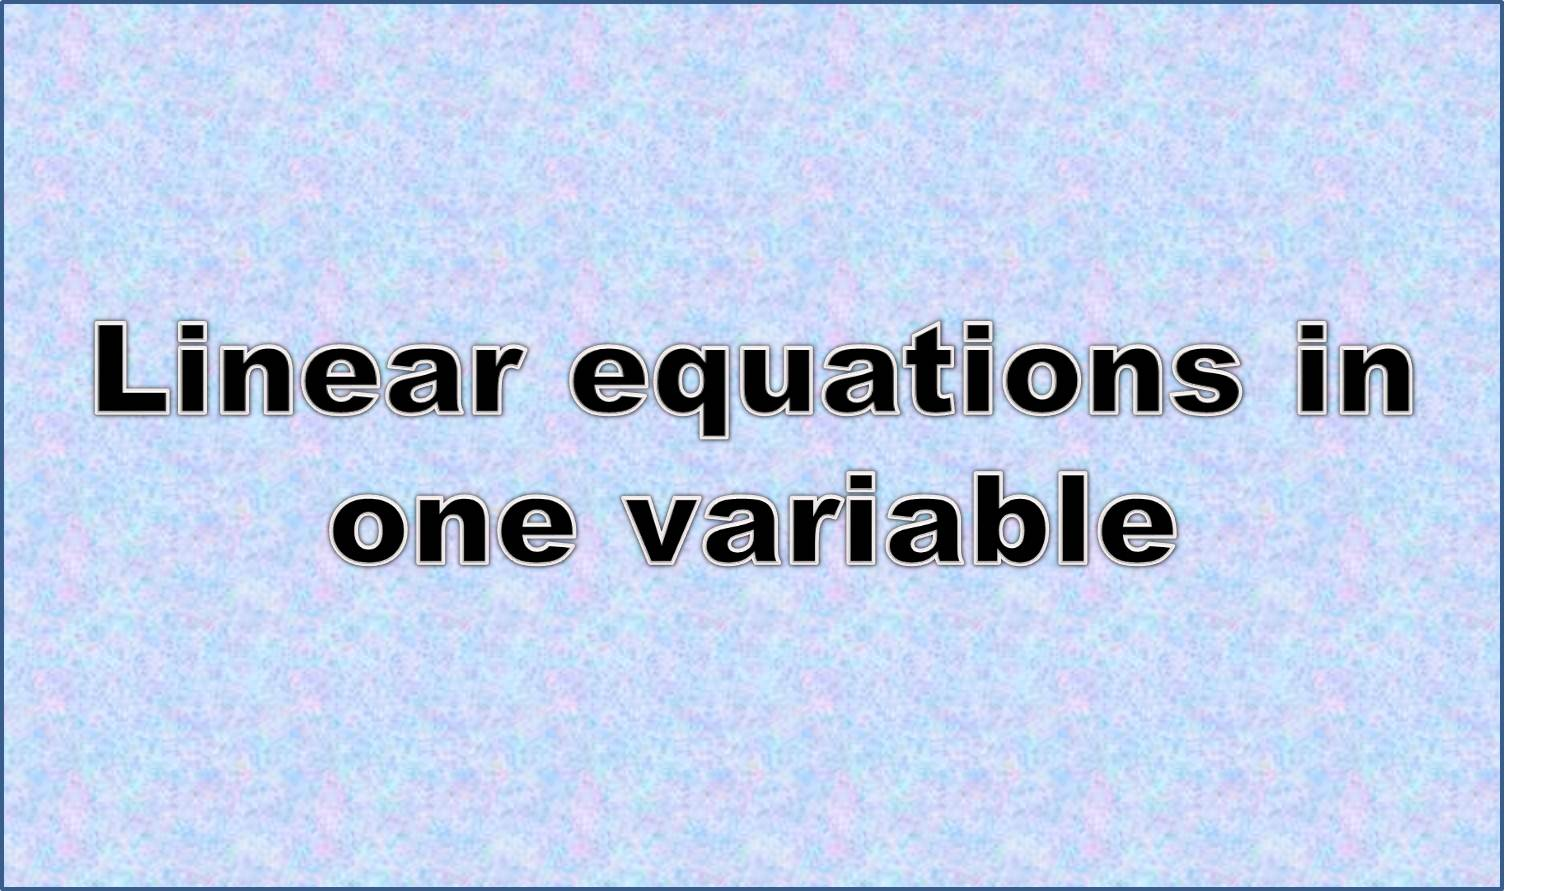 http://study.aisectonline.com/images/Equation with the variable in the denominator.jpg